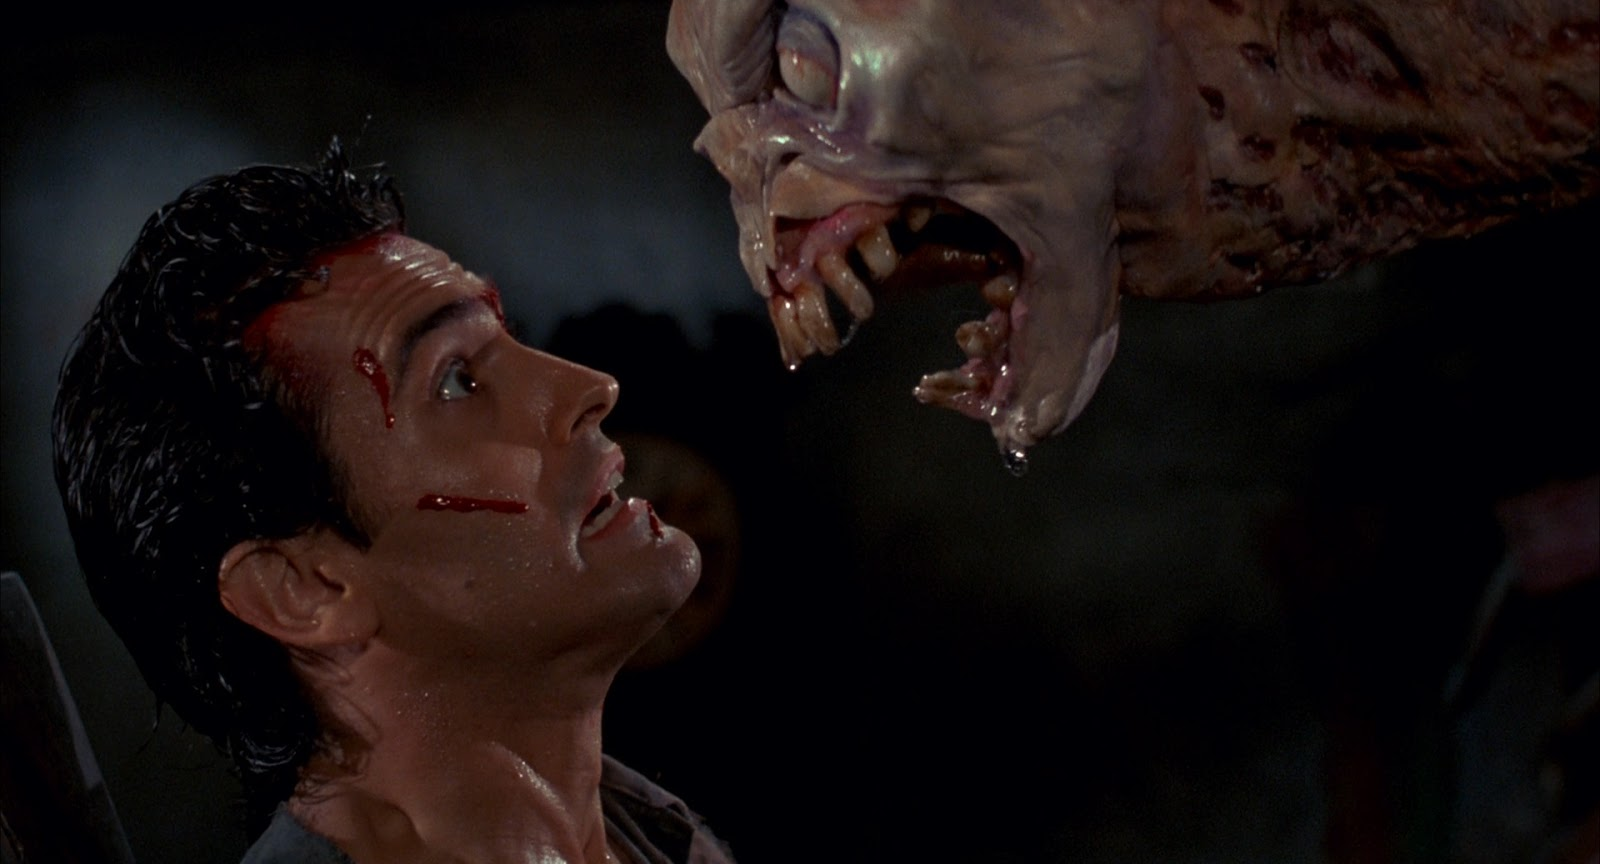 Evil Dead II (1987) - Horror Film Review